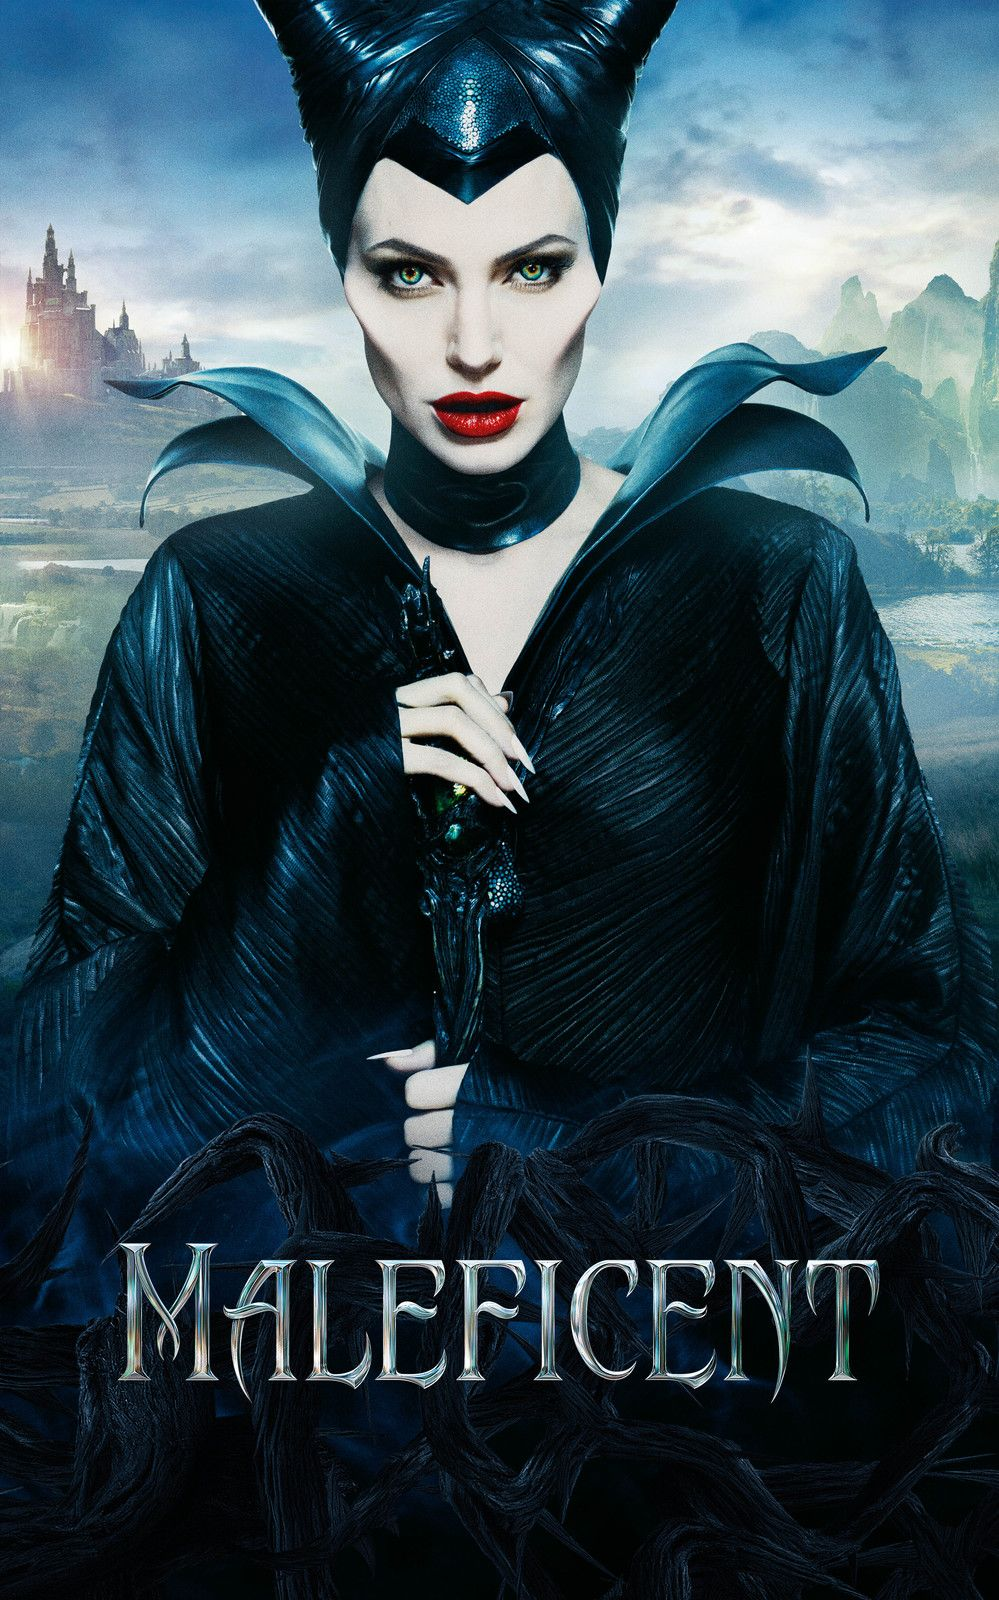 Maleficent Posters And Canvas Prints In 2019 Maleficent